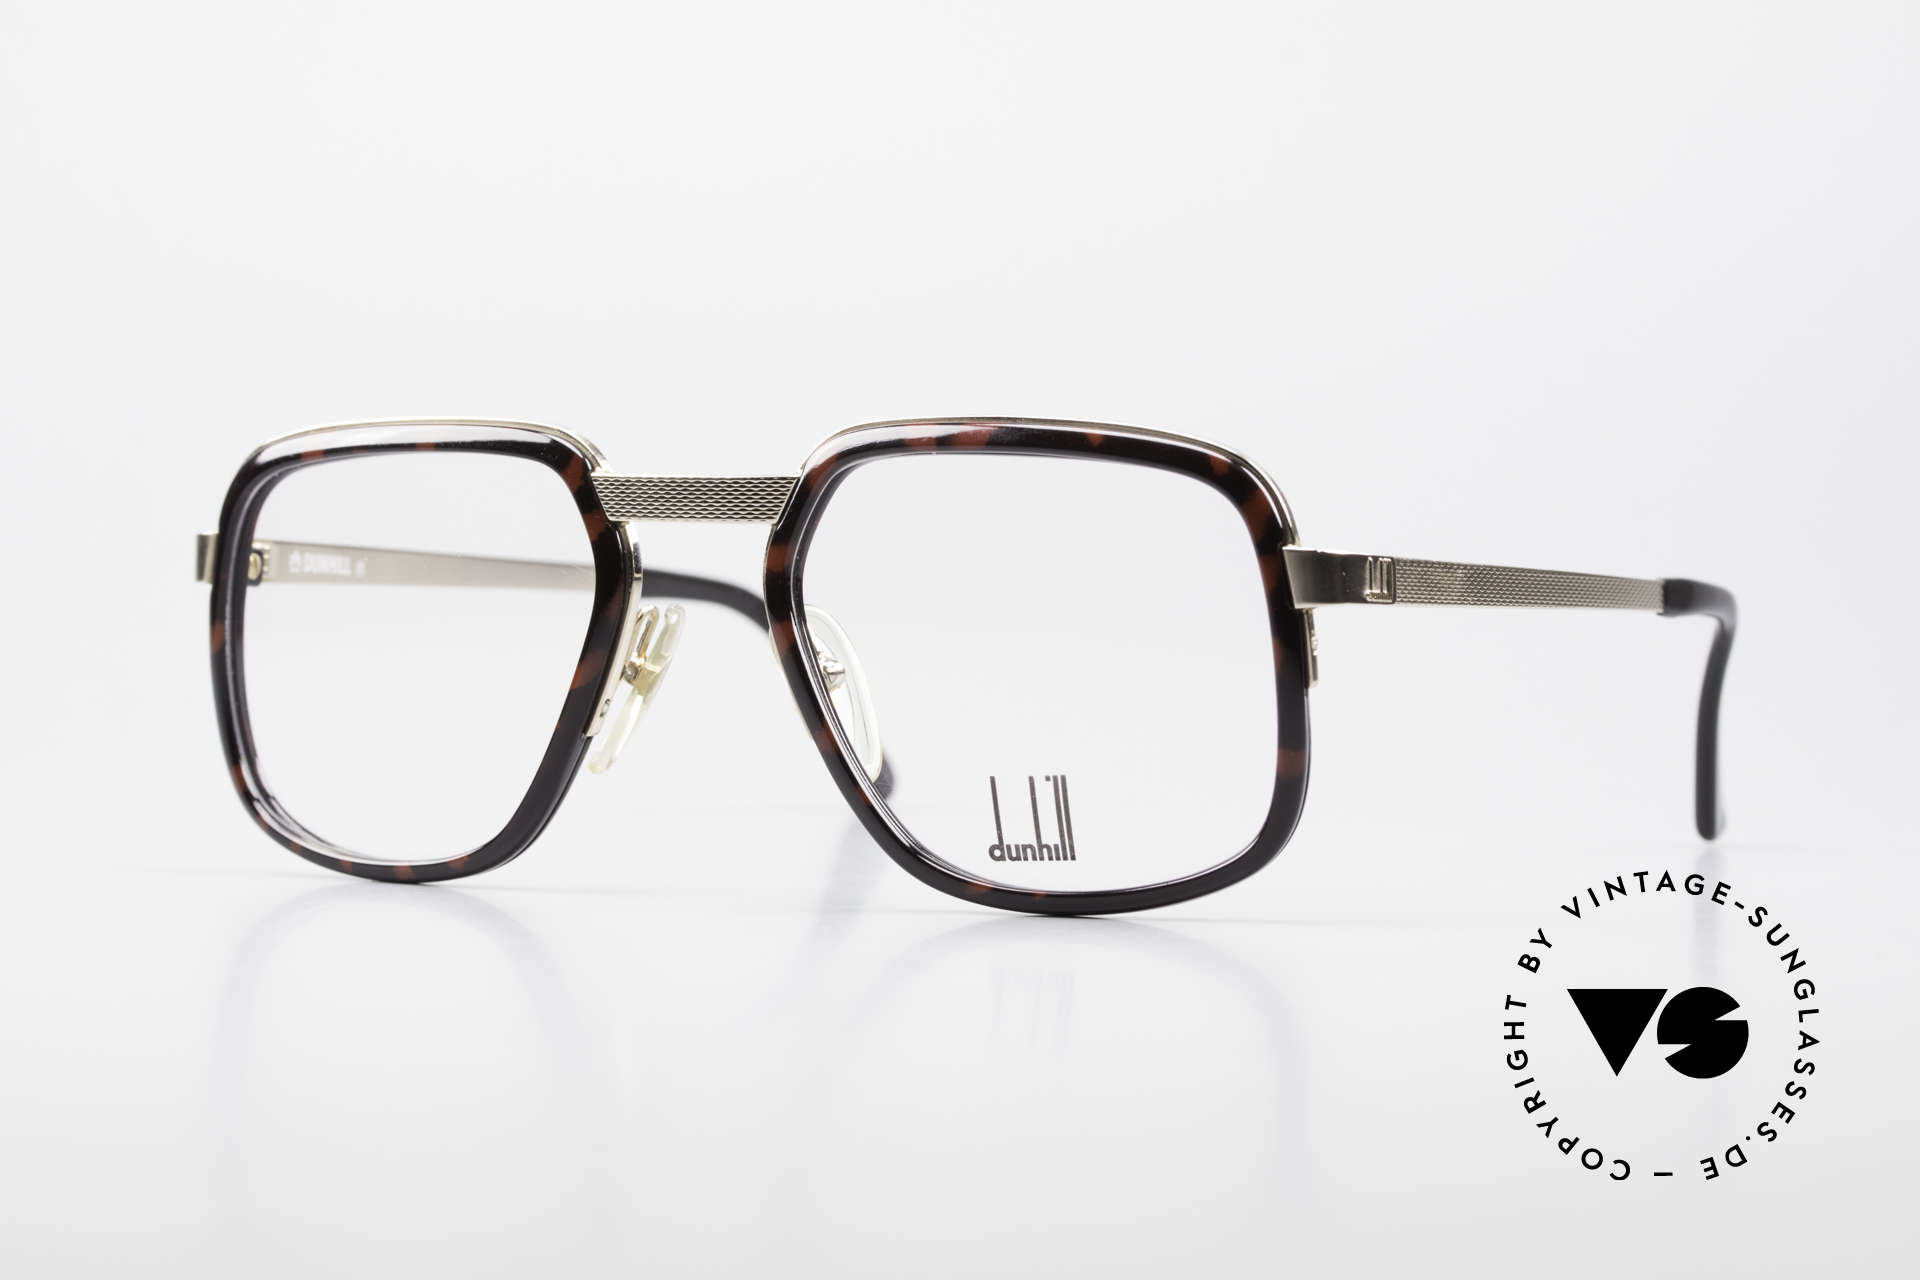 Dunhill 6073 Gold Plated 80's Men's Glasses, well-known classiness by the Englisch noble brand, Made for Men